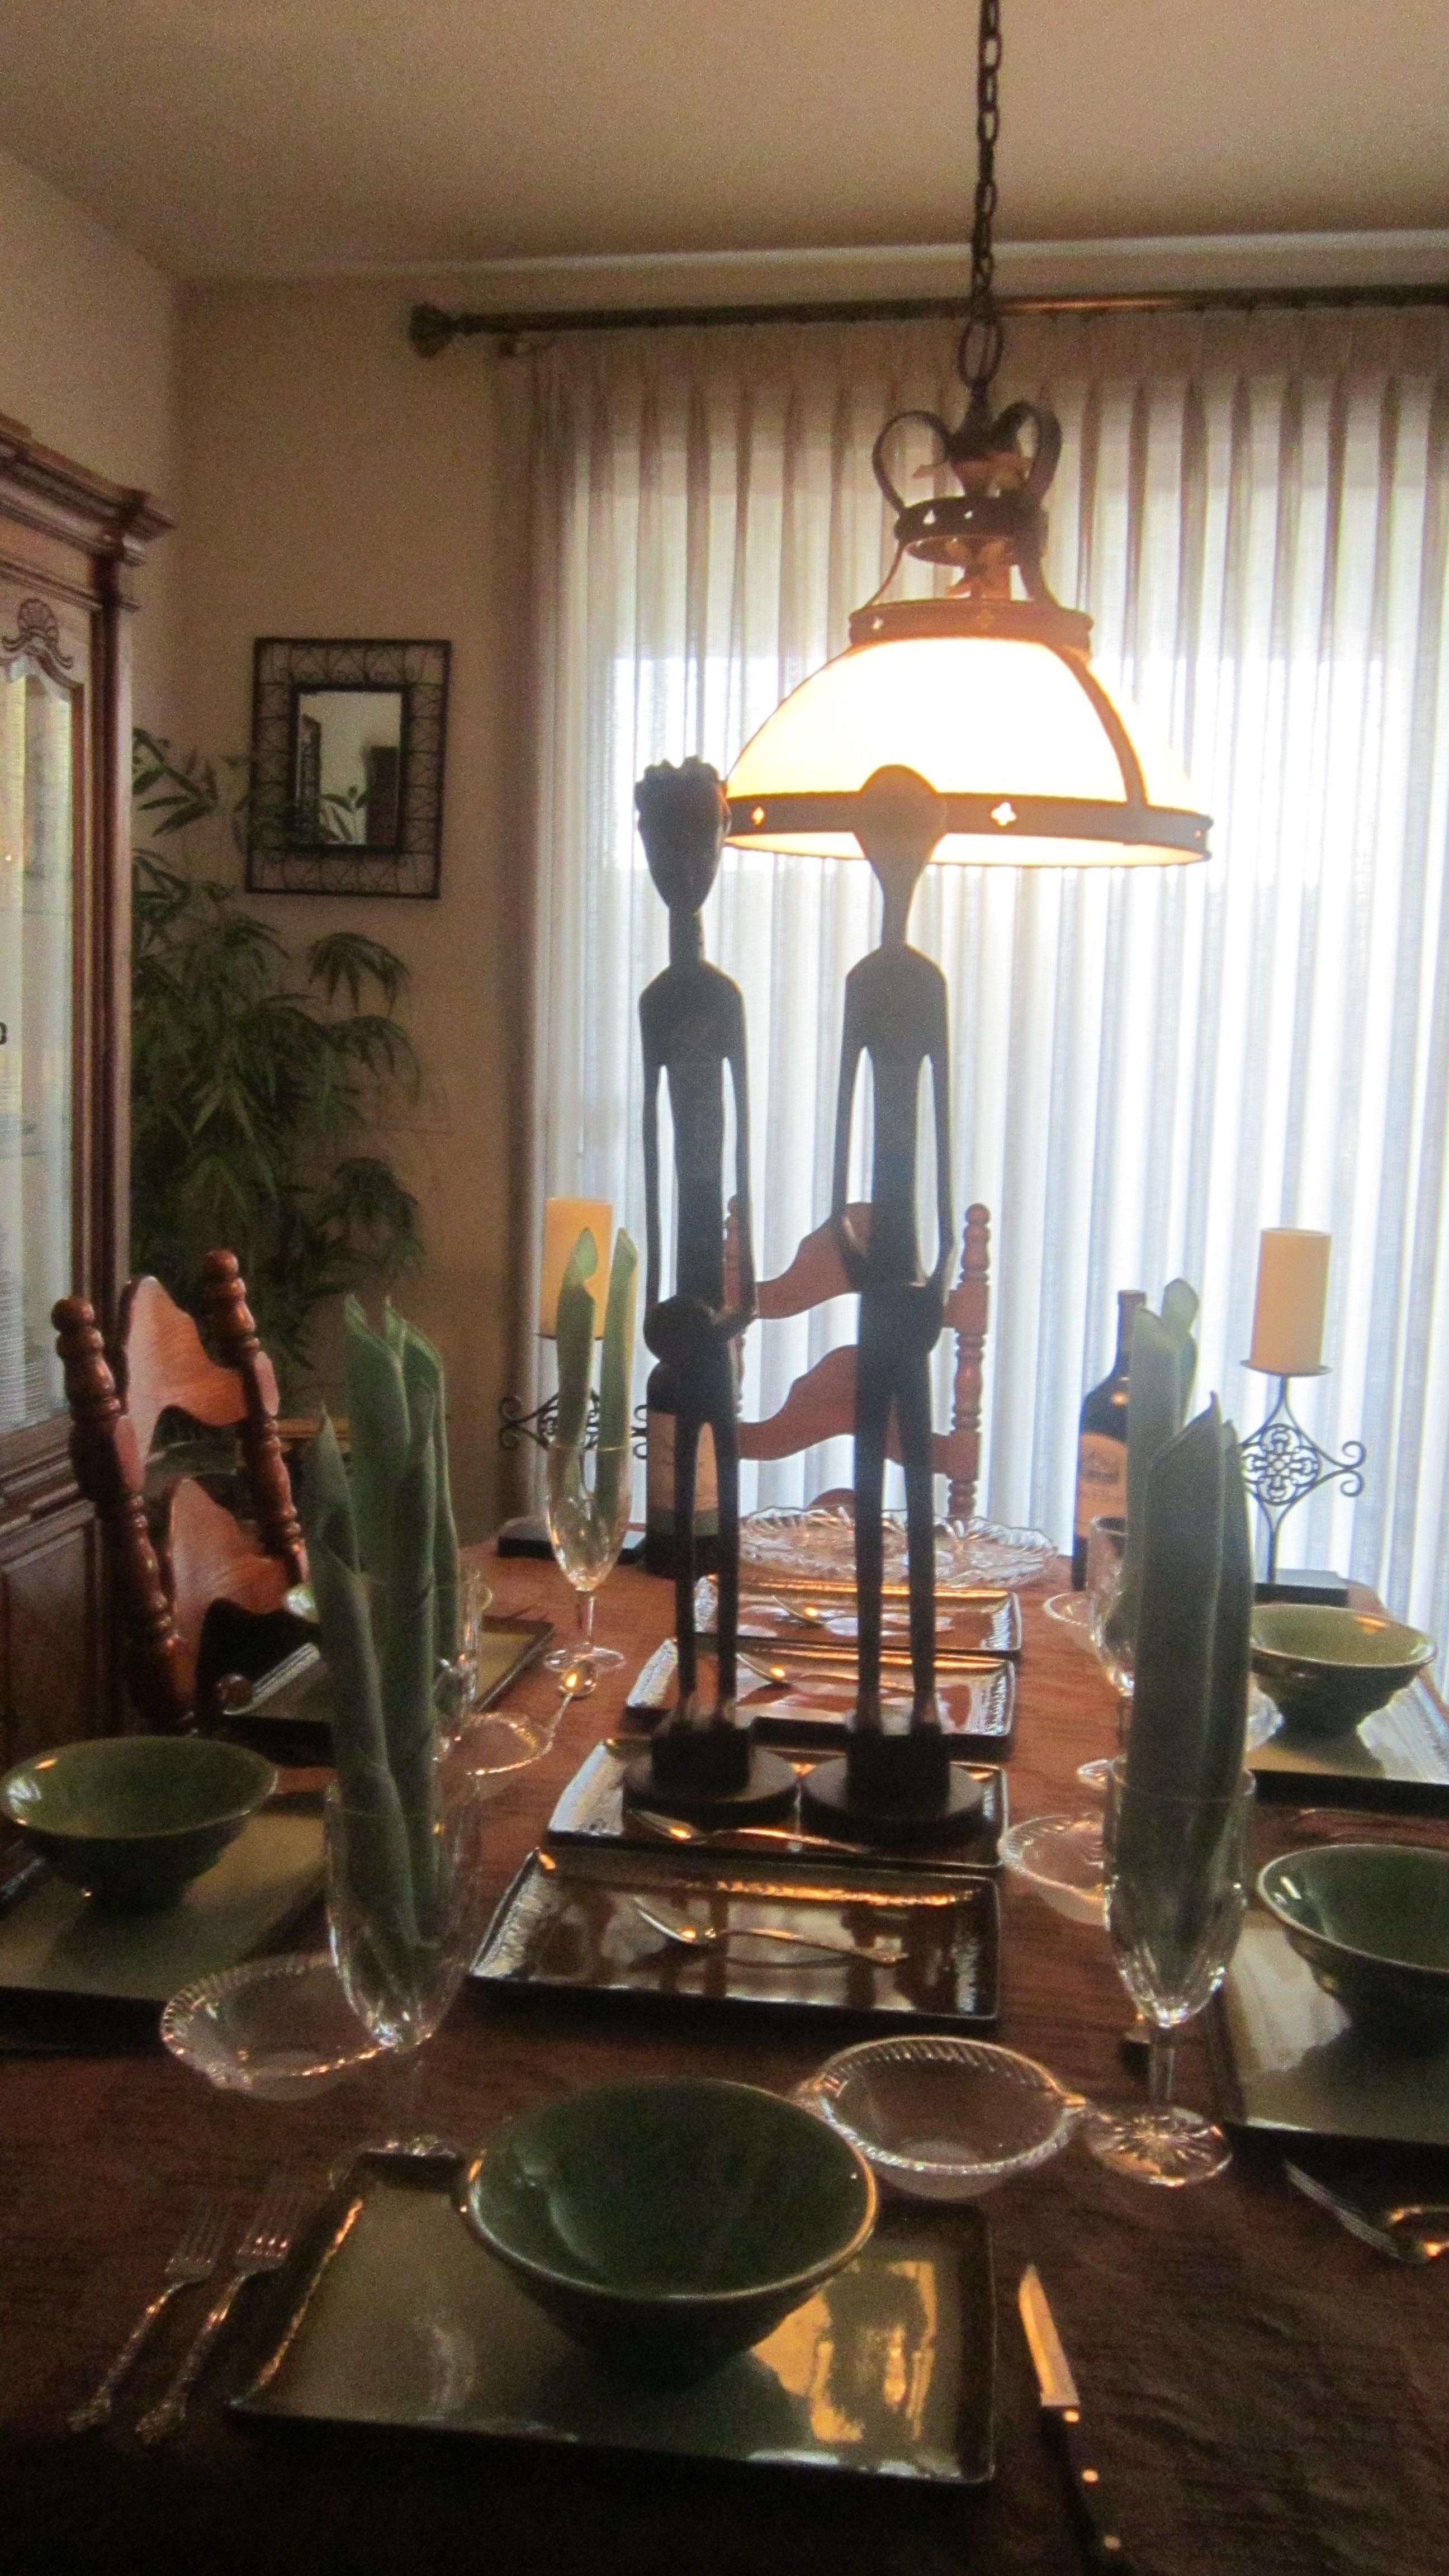 African tablescape   Ceiling lights, Decor, Home decor